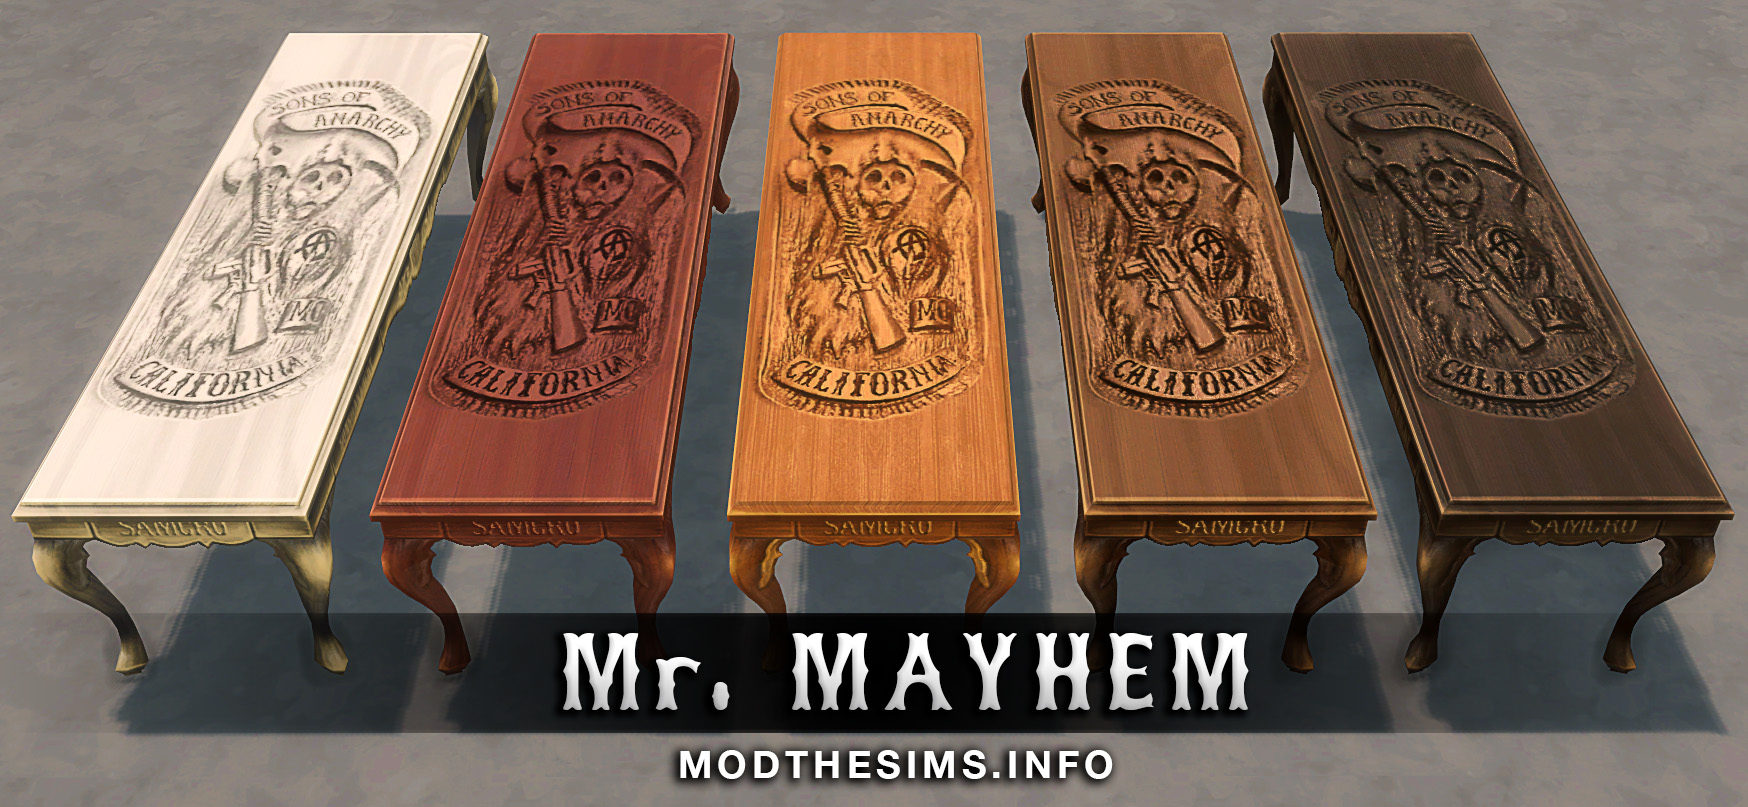 Carved Reaper Table (Sons of Anarchy's Table) by Mr. Mayhem